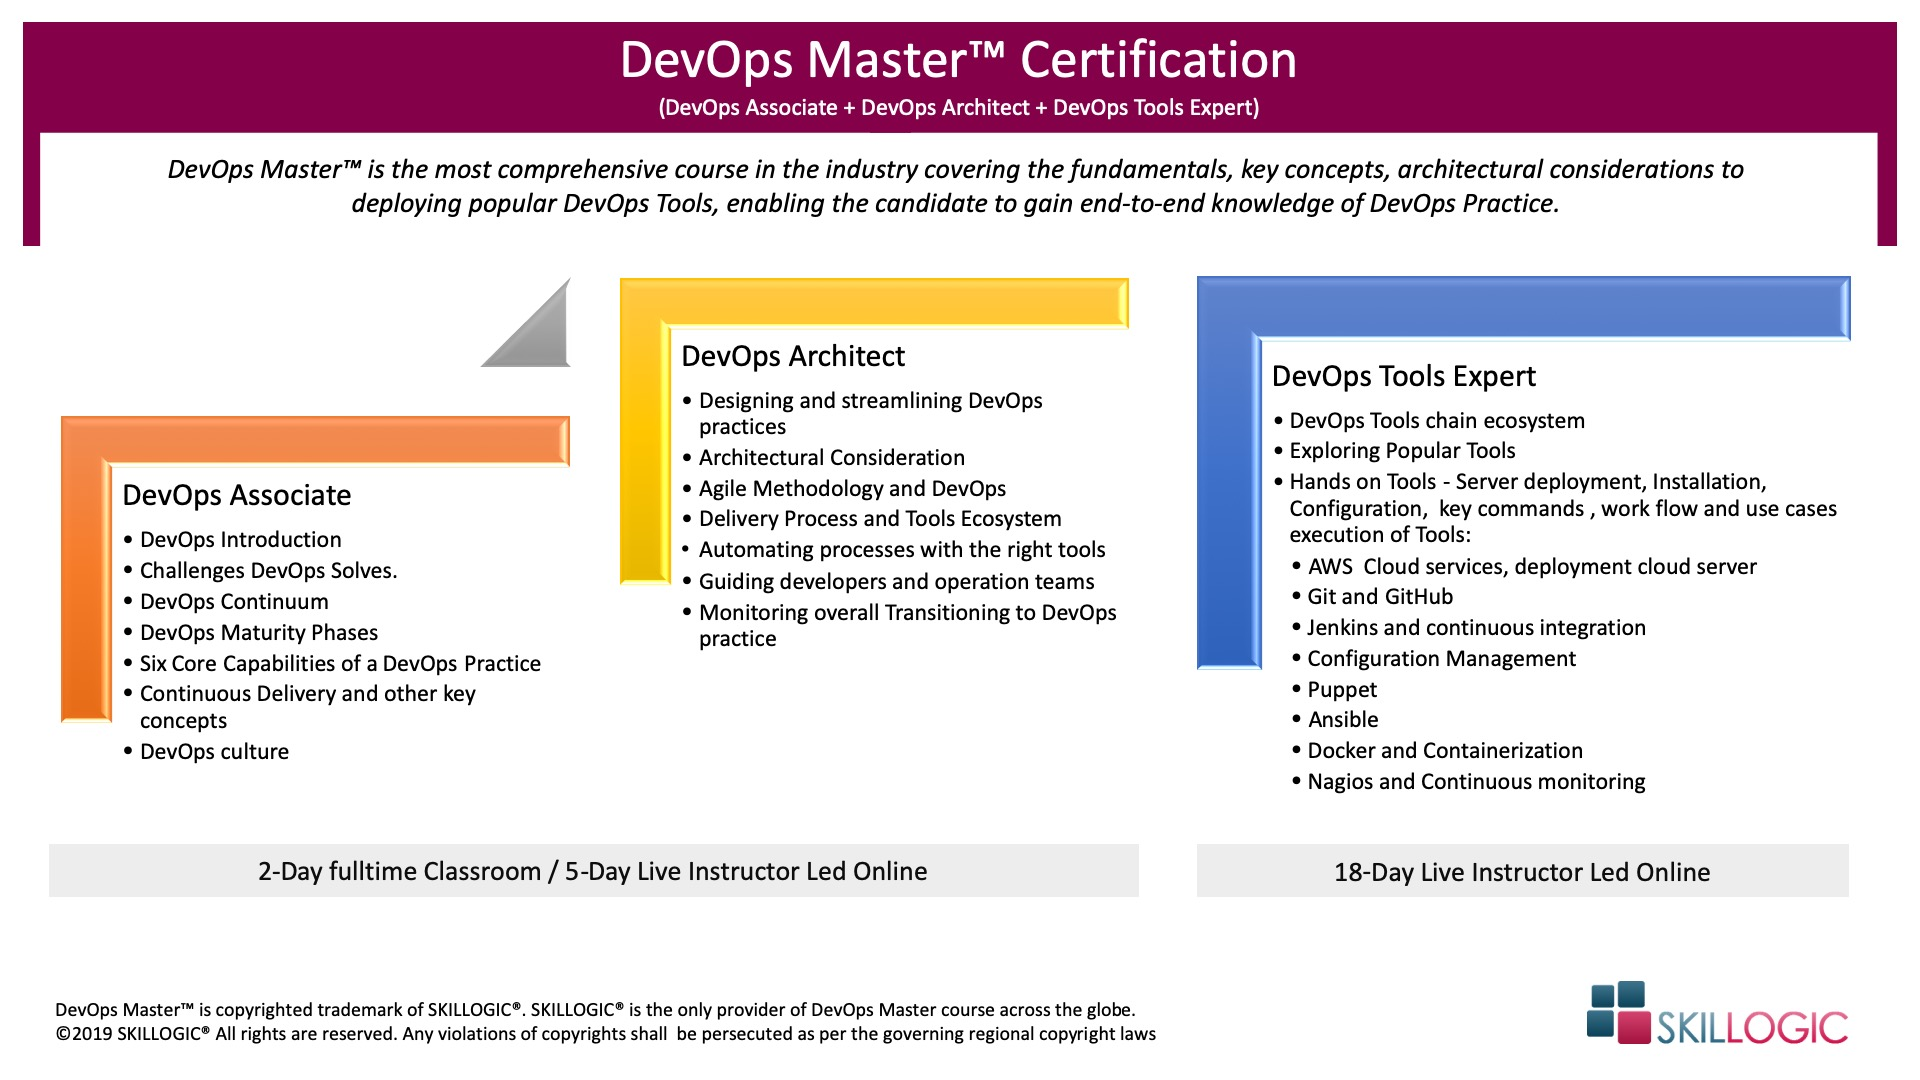 DevOps Associate Certification - SKILLOGIC - ITIL, PRINCE2